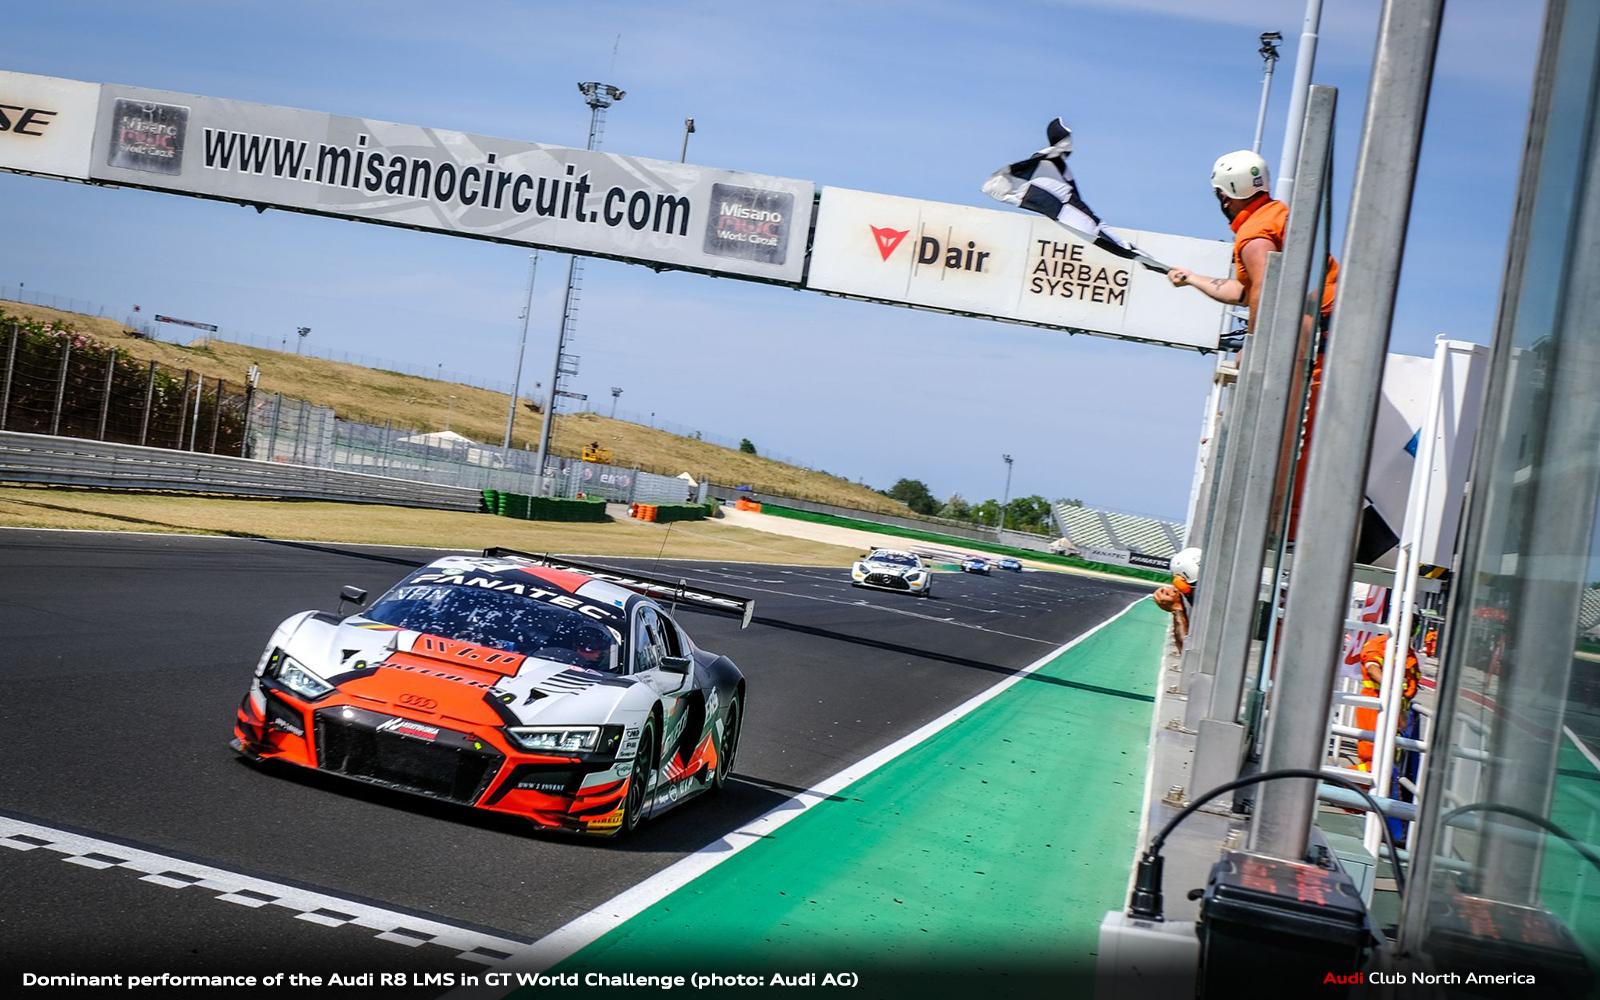 Dominant Performance of the Audi R8 LMS in GT World Challenge